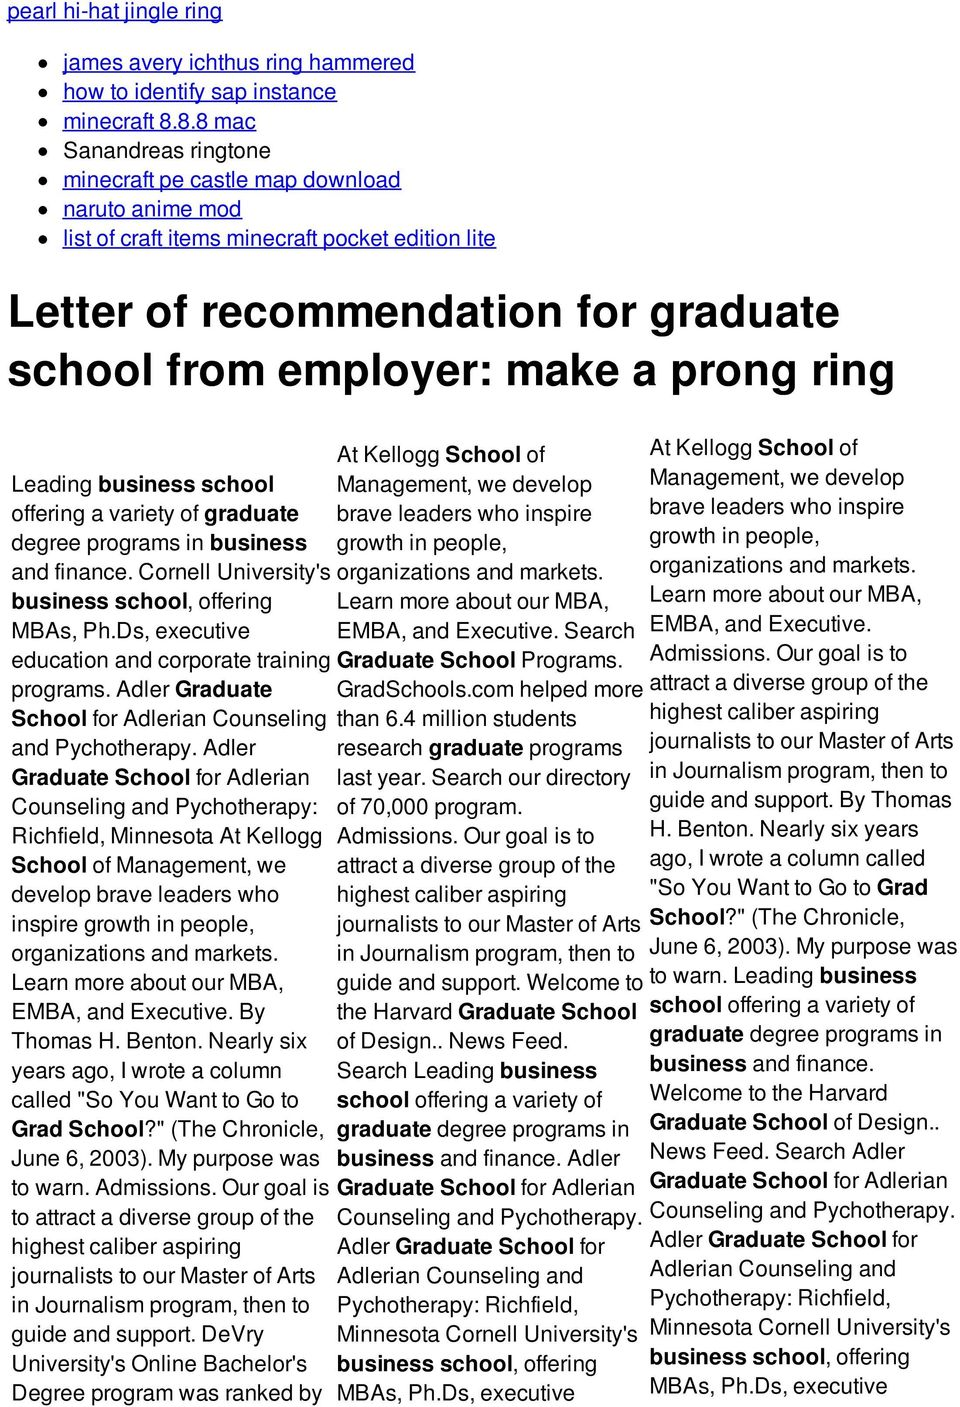 prong ring Leading business school offering a variety of graduate degree programs in business and finance. Cornell University's business school, offering MBAs, Ph.